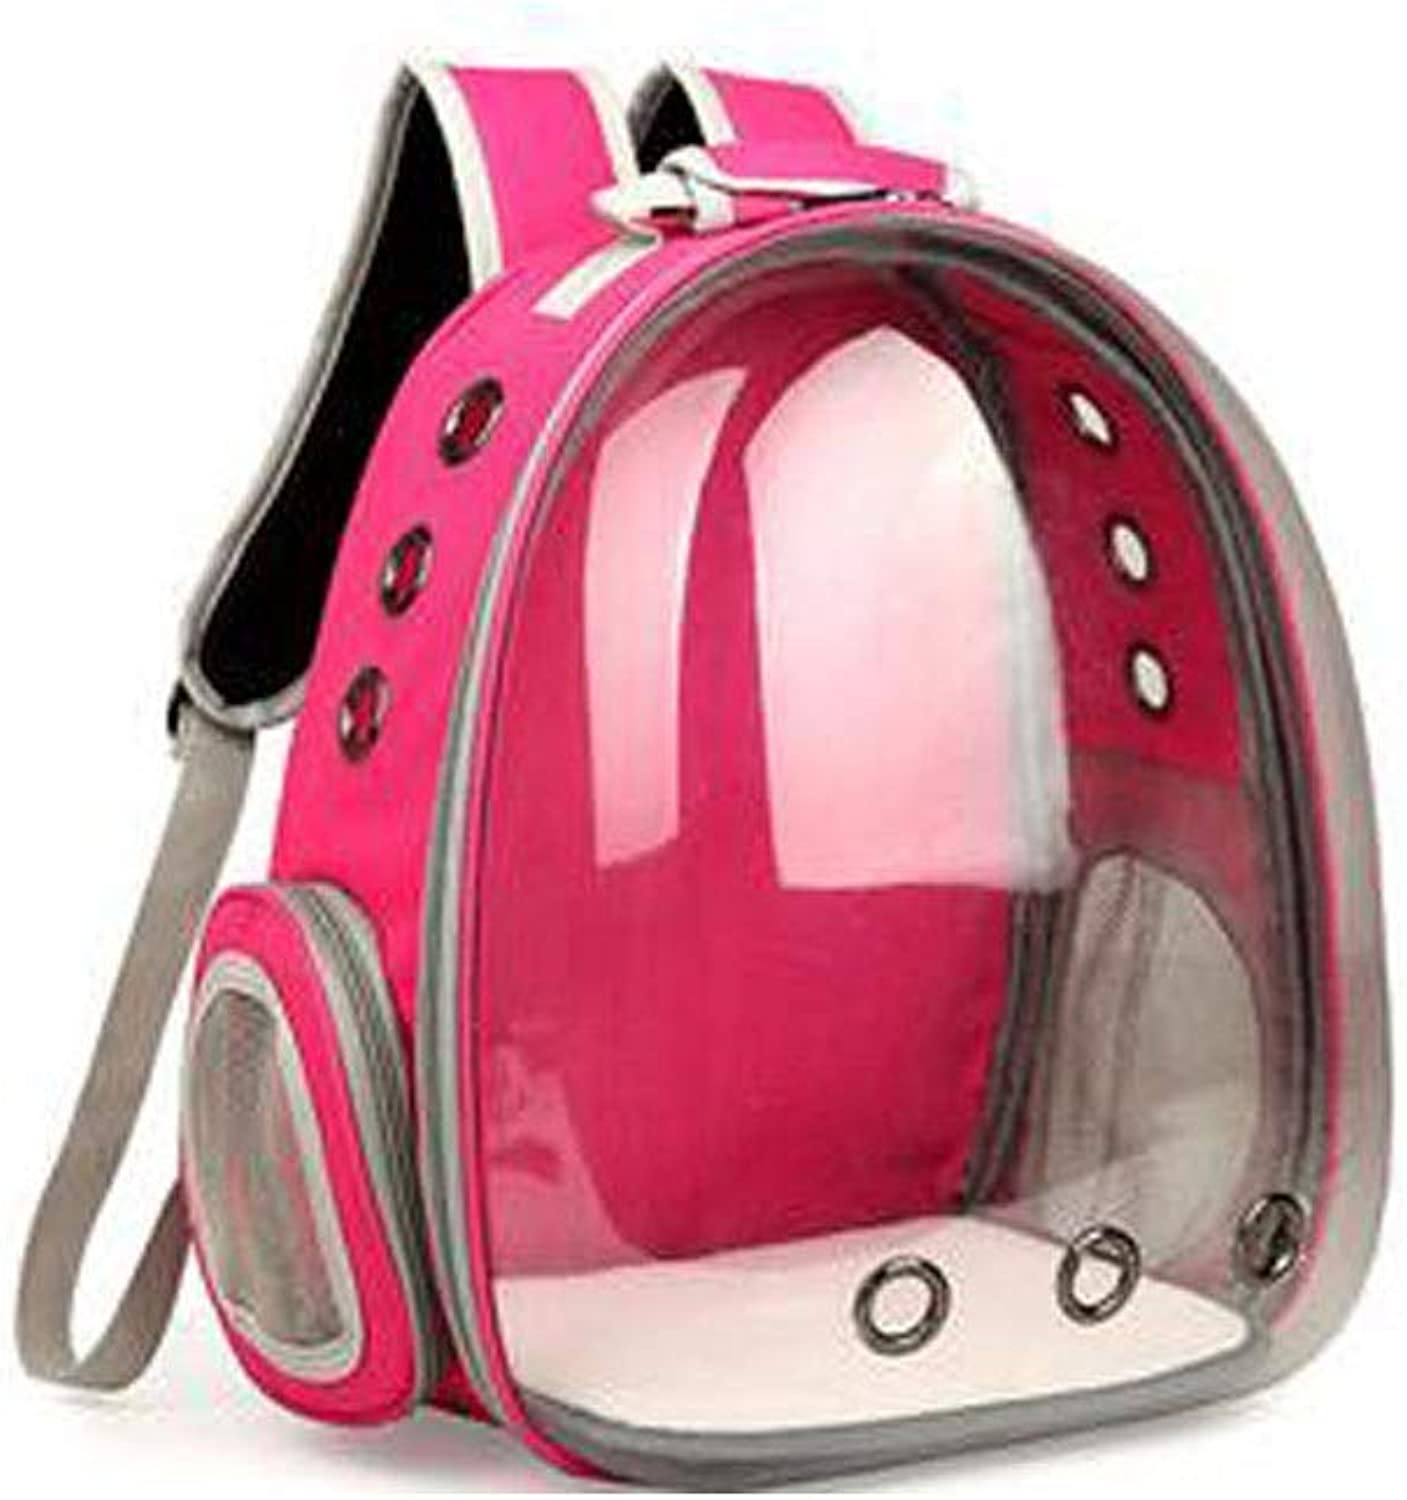 Guyuexuan A Backpack Carried Outside The Pet, The Space Capsule is Suitable for Small Dogs, Transparent Waterproof Pet Backpacks. Pet Travel Essentials (color   pink red)